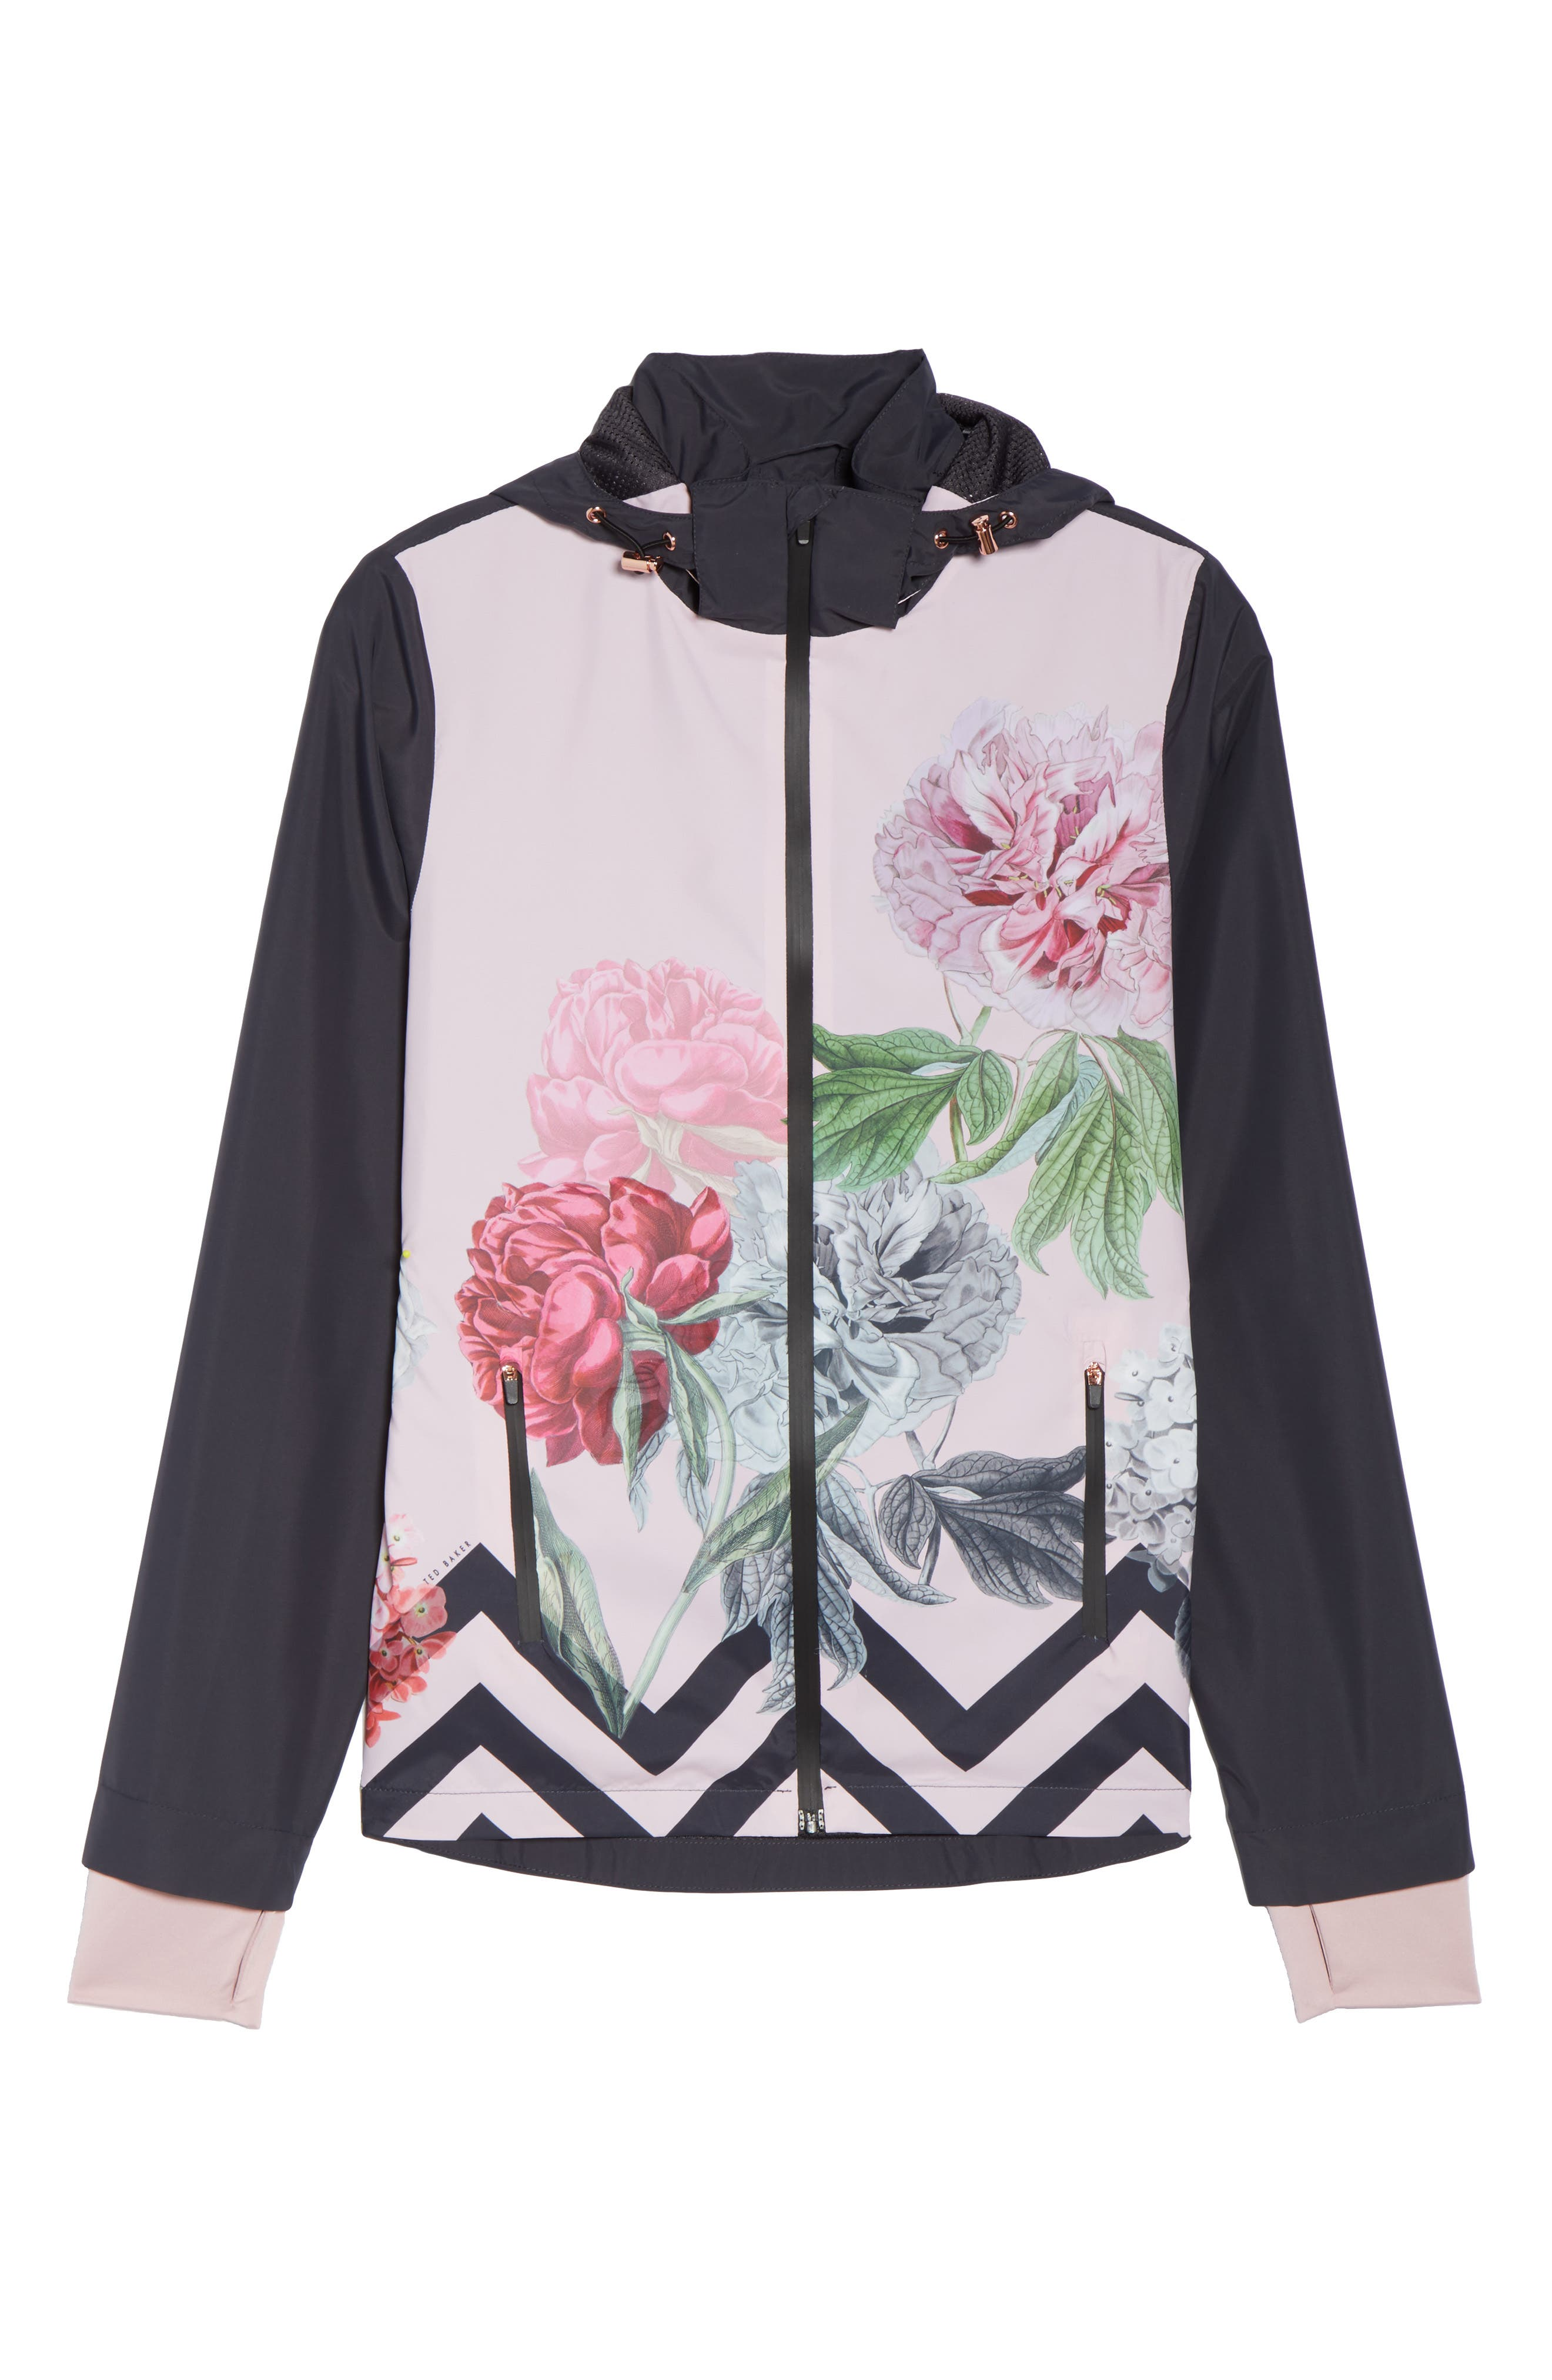 Palace Gardens Print Hooded Jacket,                             Alternate thumbnail 6, color,                             005